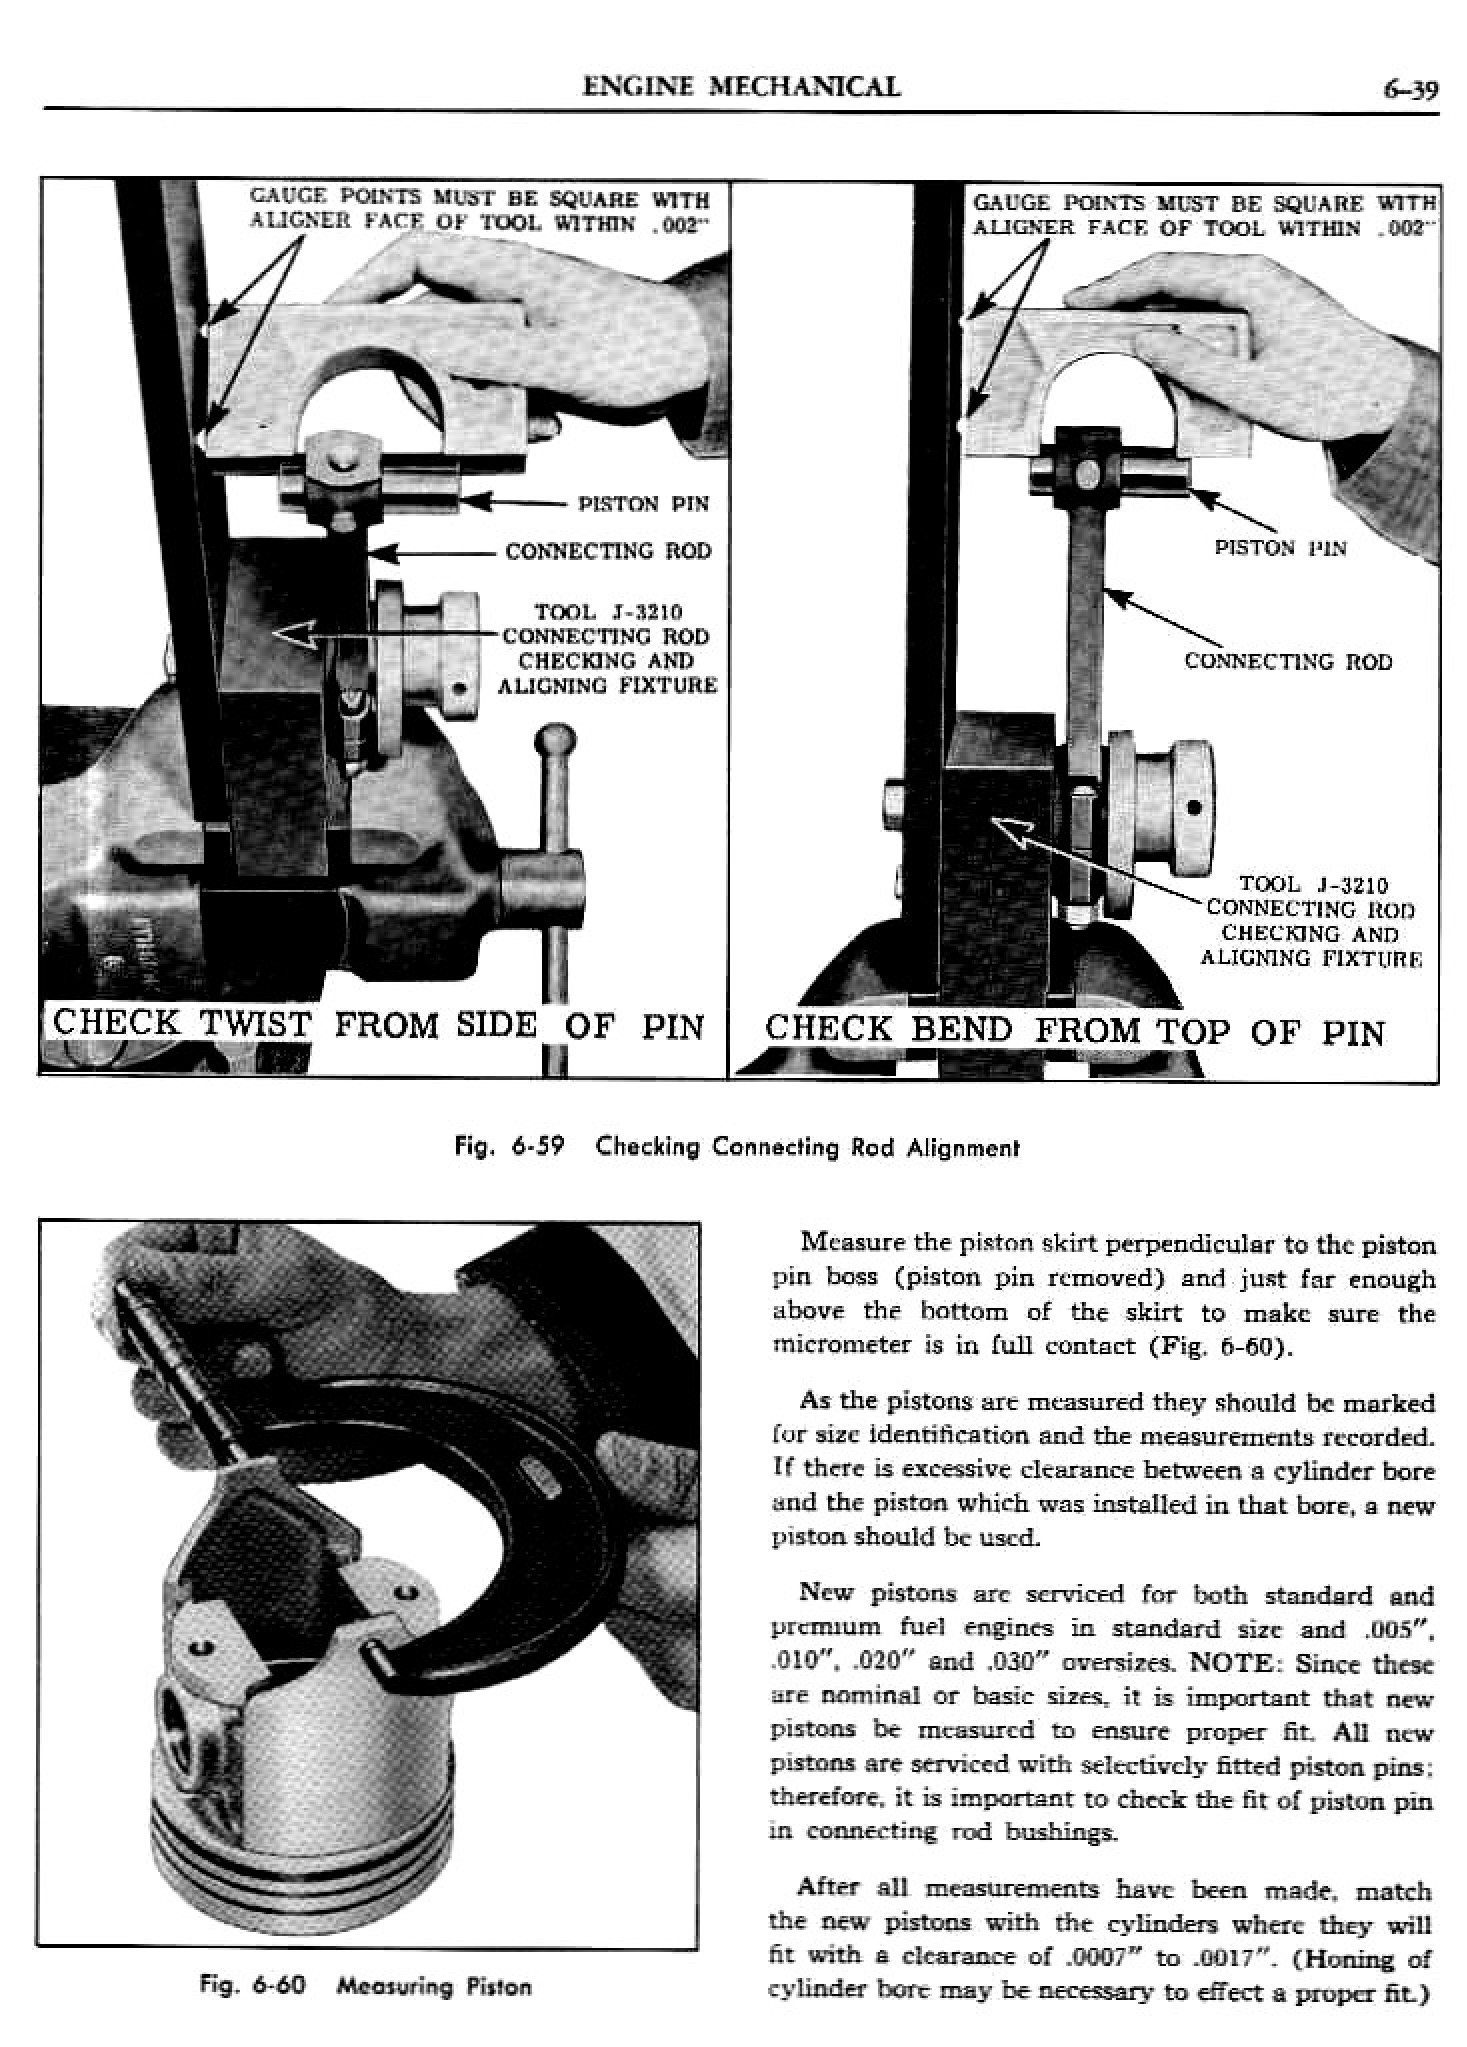 1956 Pontiac Shop Manual- Engine Page 40 of 56